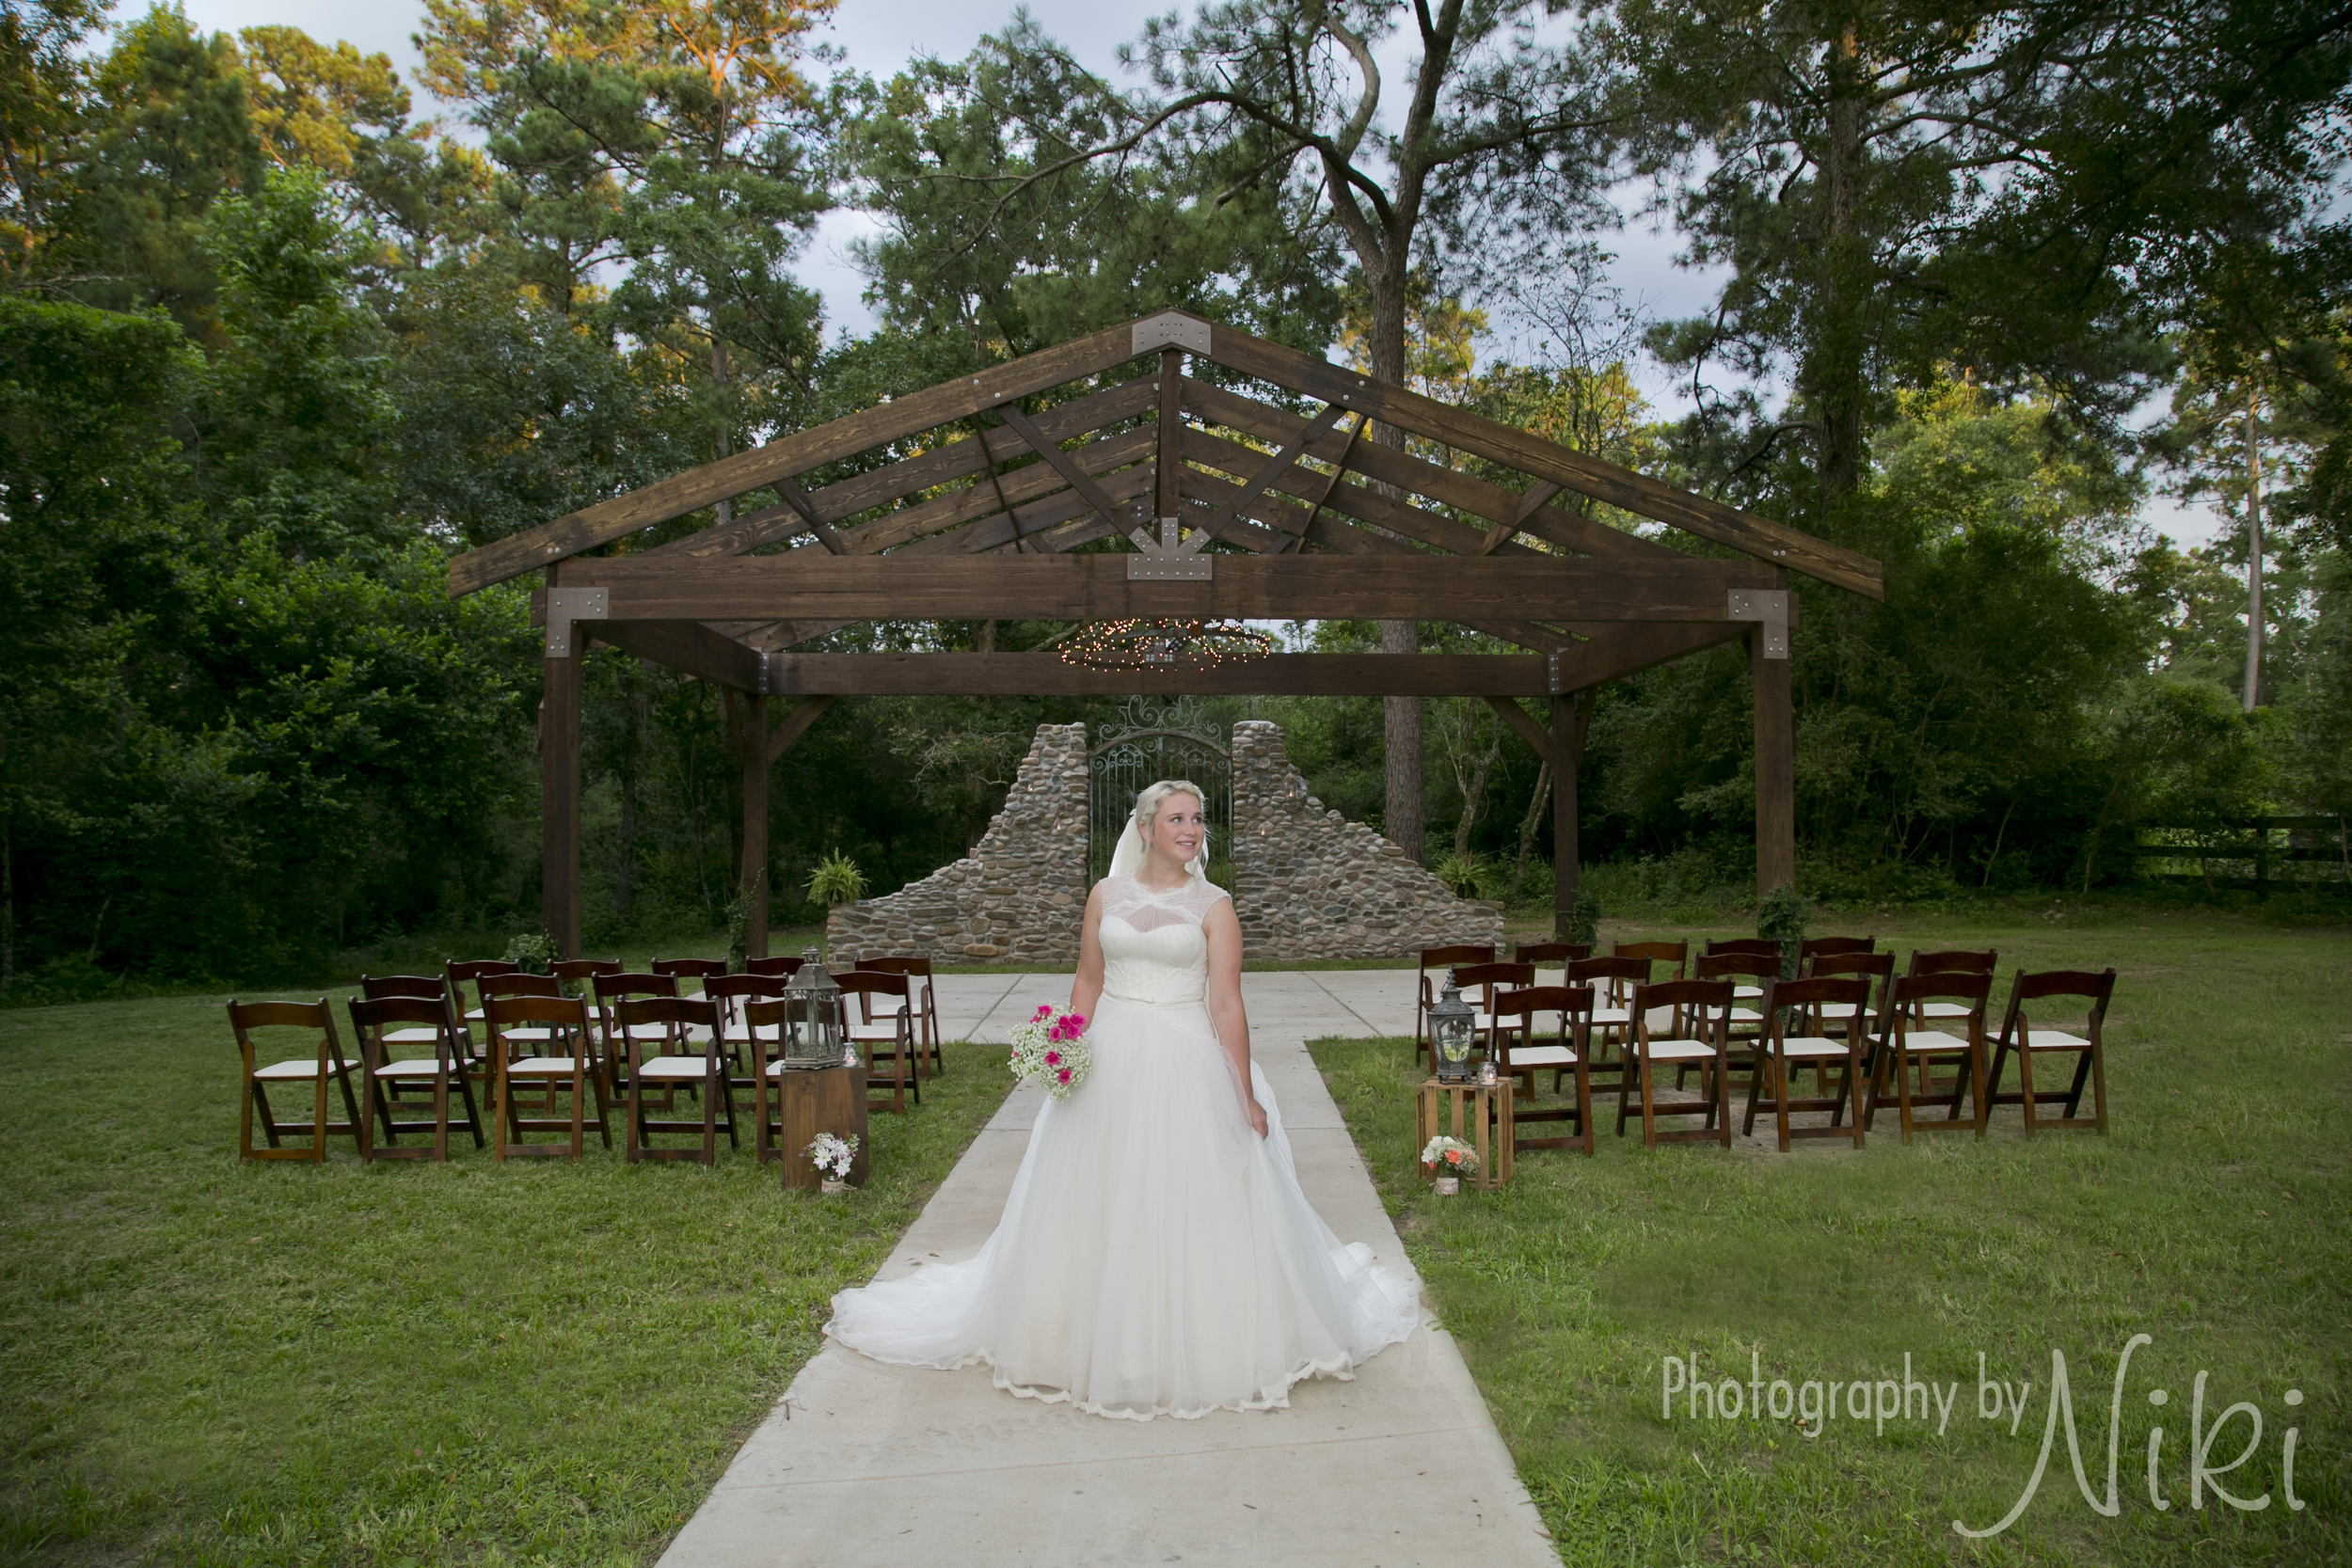 Ceremony Site with our openair Chapel, rock wall with antique gates and a beautiful bride.